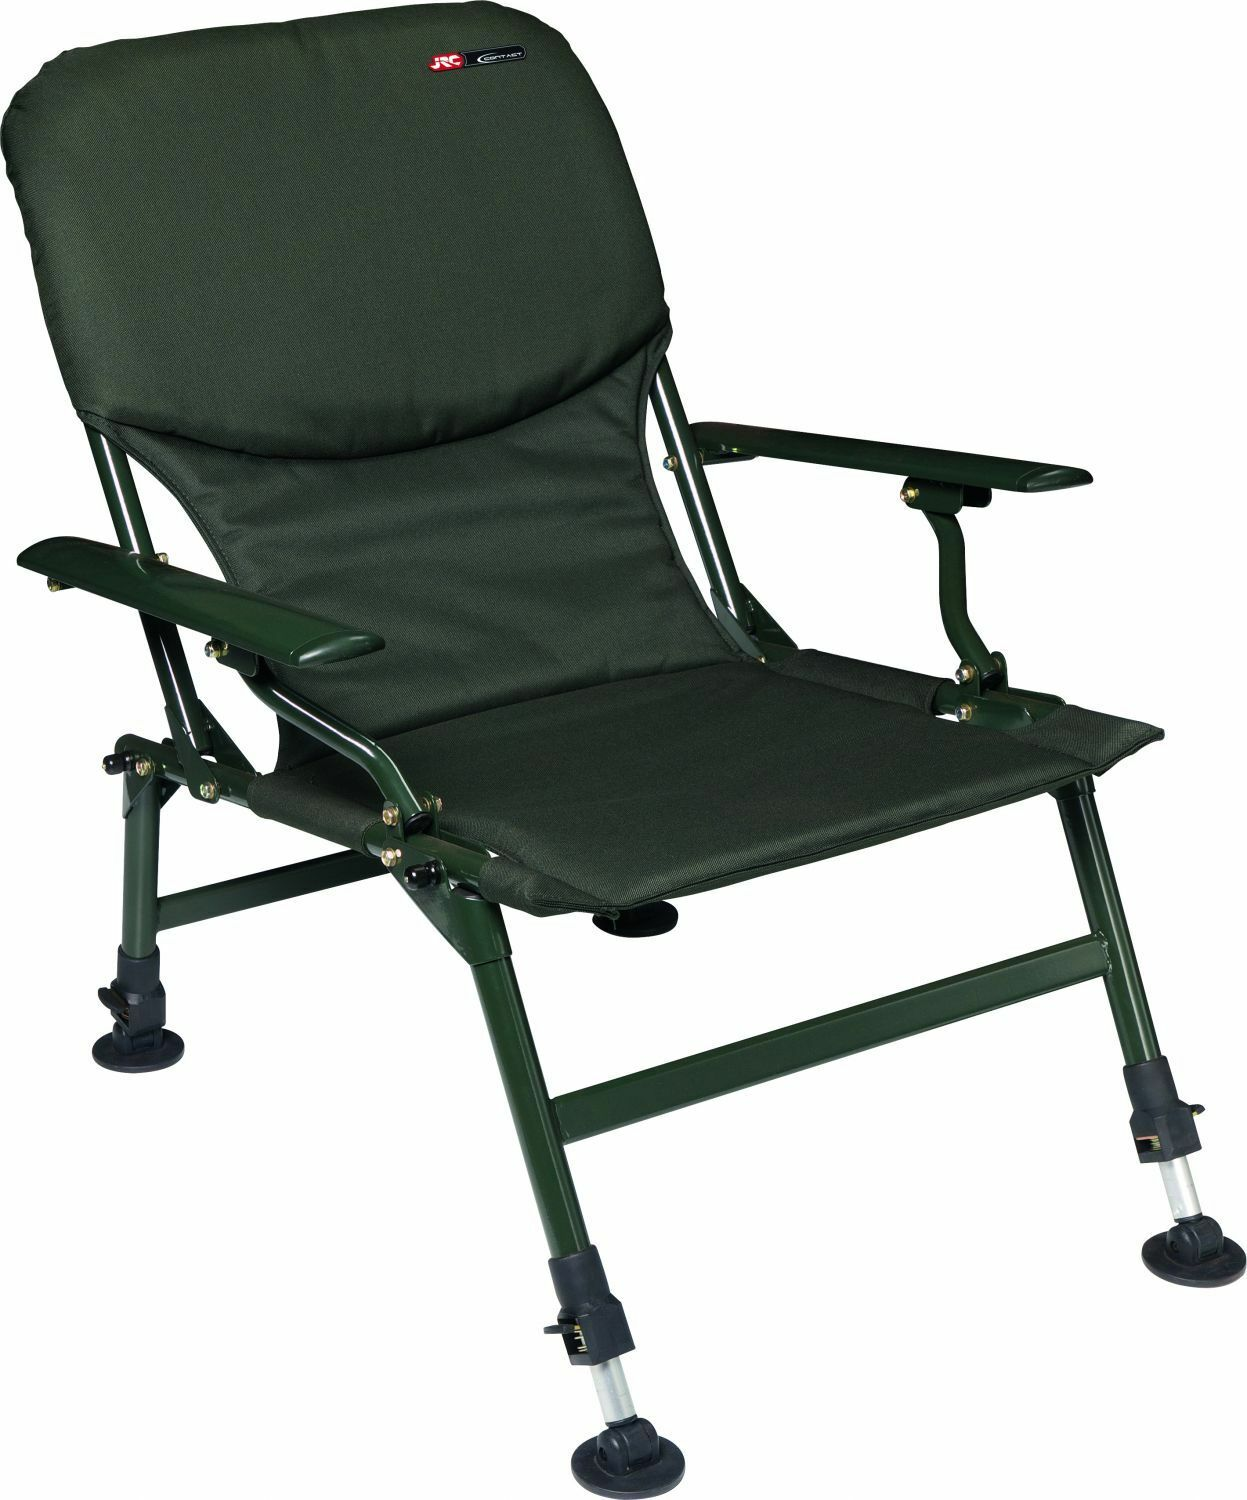 JRC Contact Chair Fishing chair Fishing stool Camping chair with armrests